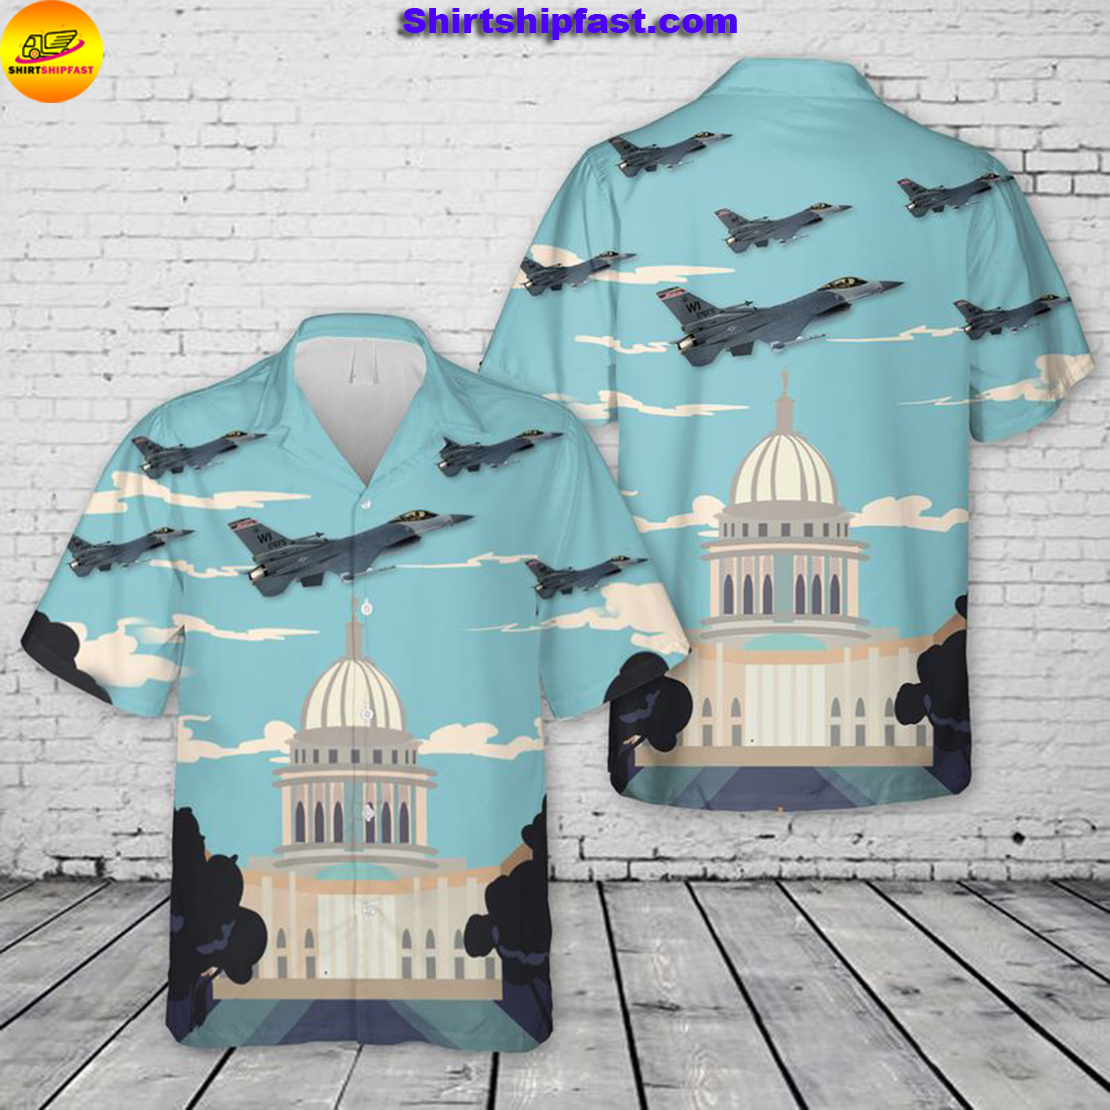 US Air Force Wisconsin Air National Guard 115th Fighter Wing F-16 Fighting Falcon Hawaiian Shirt - Picture 1